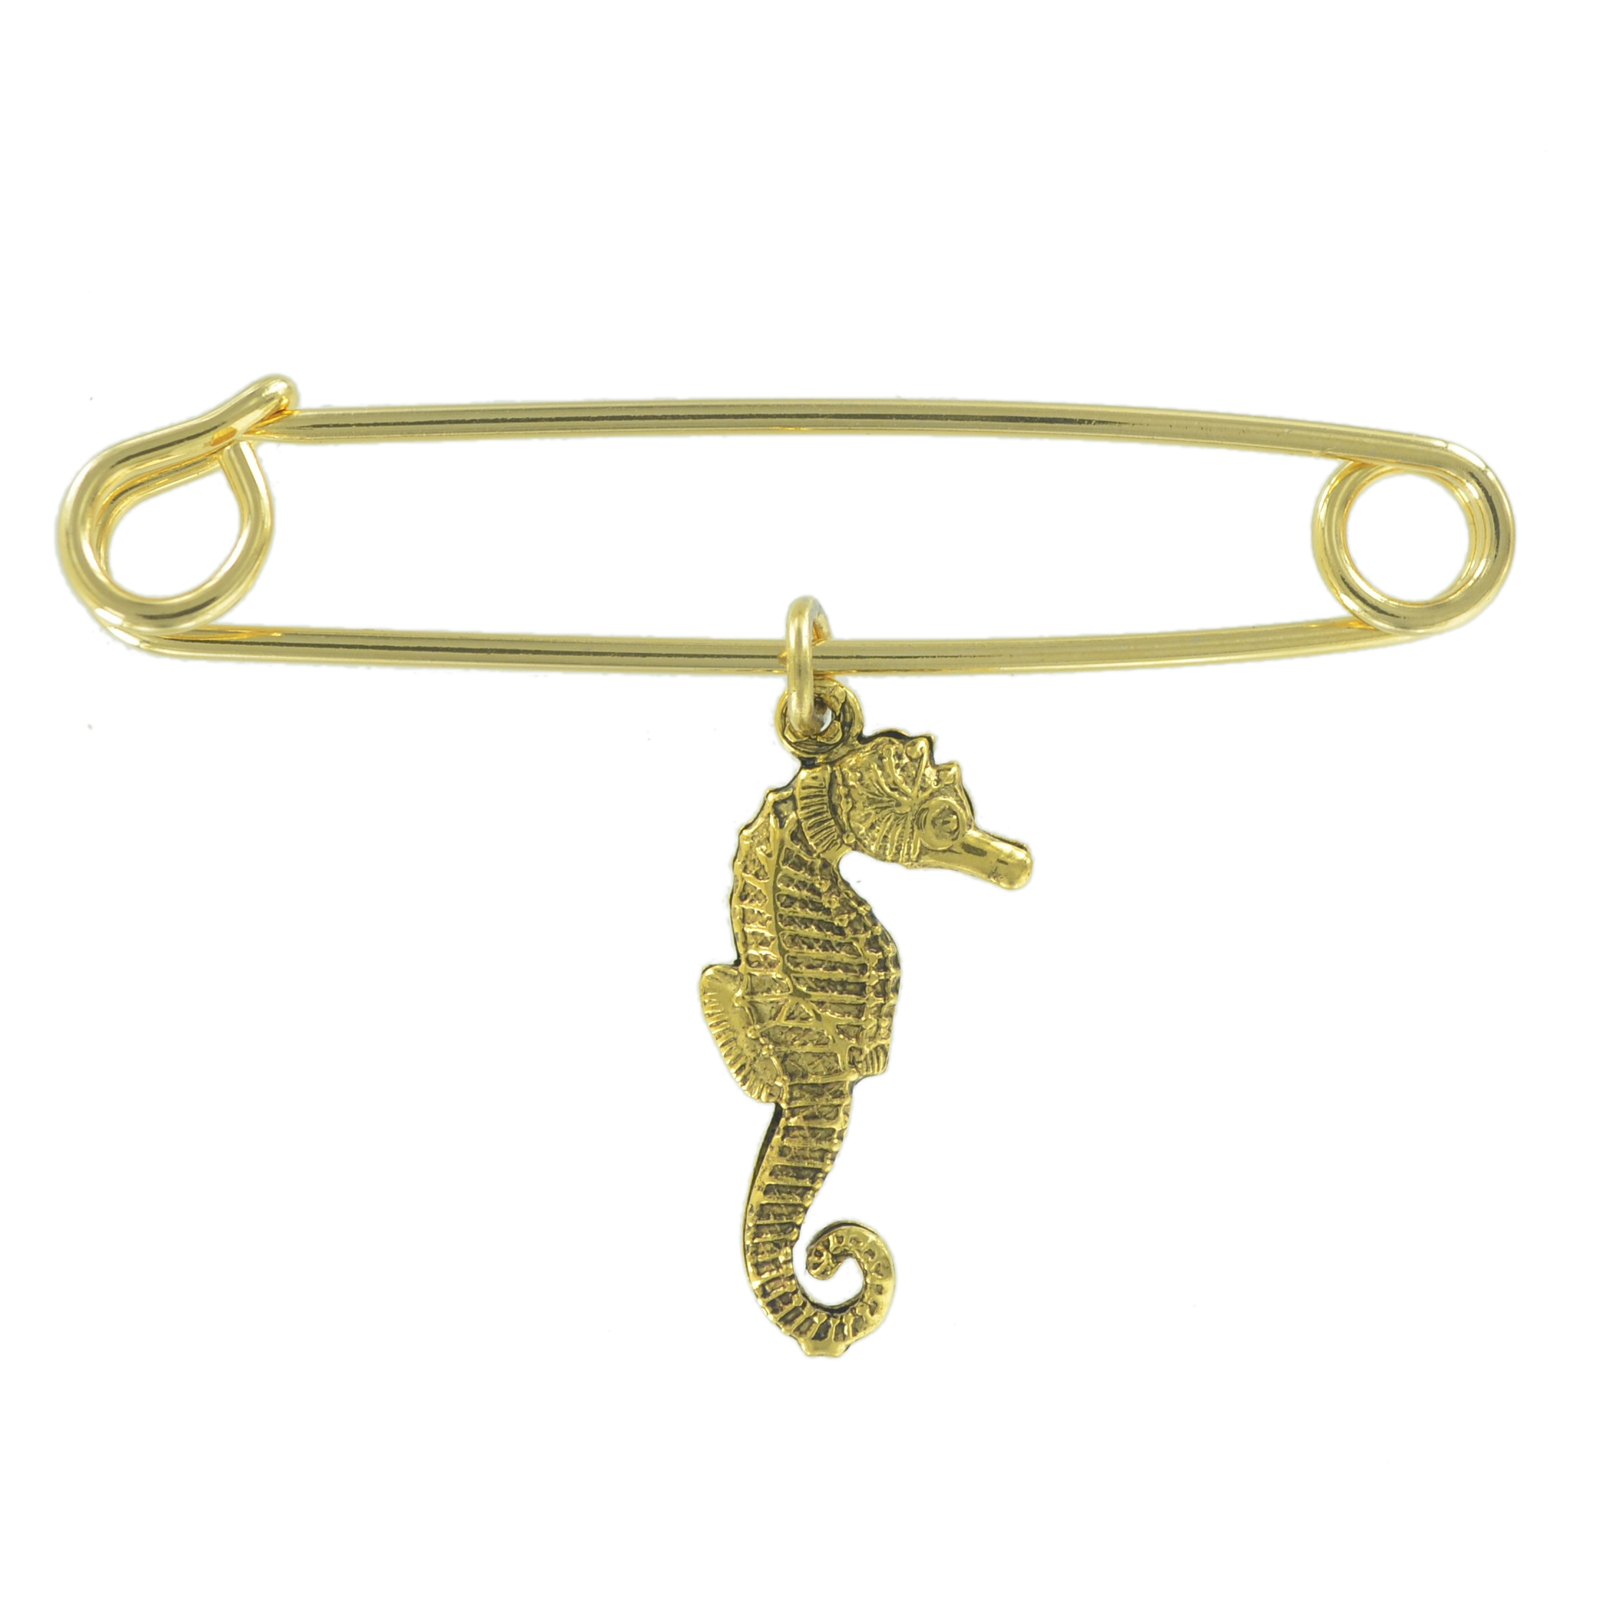 Safety Pin Brooch Seahorse Charm Made In Usa 3872 49